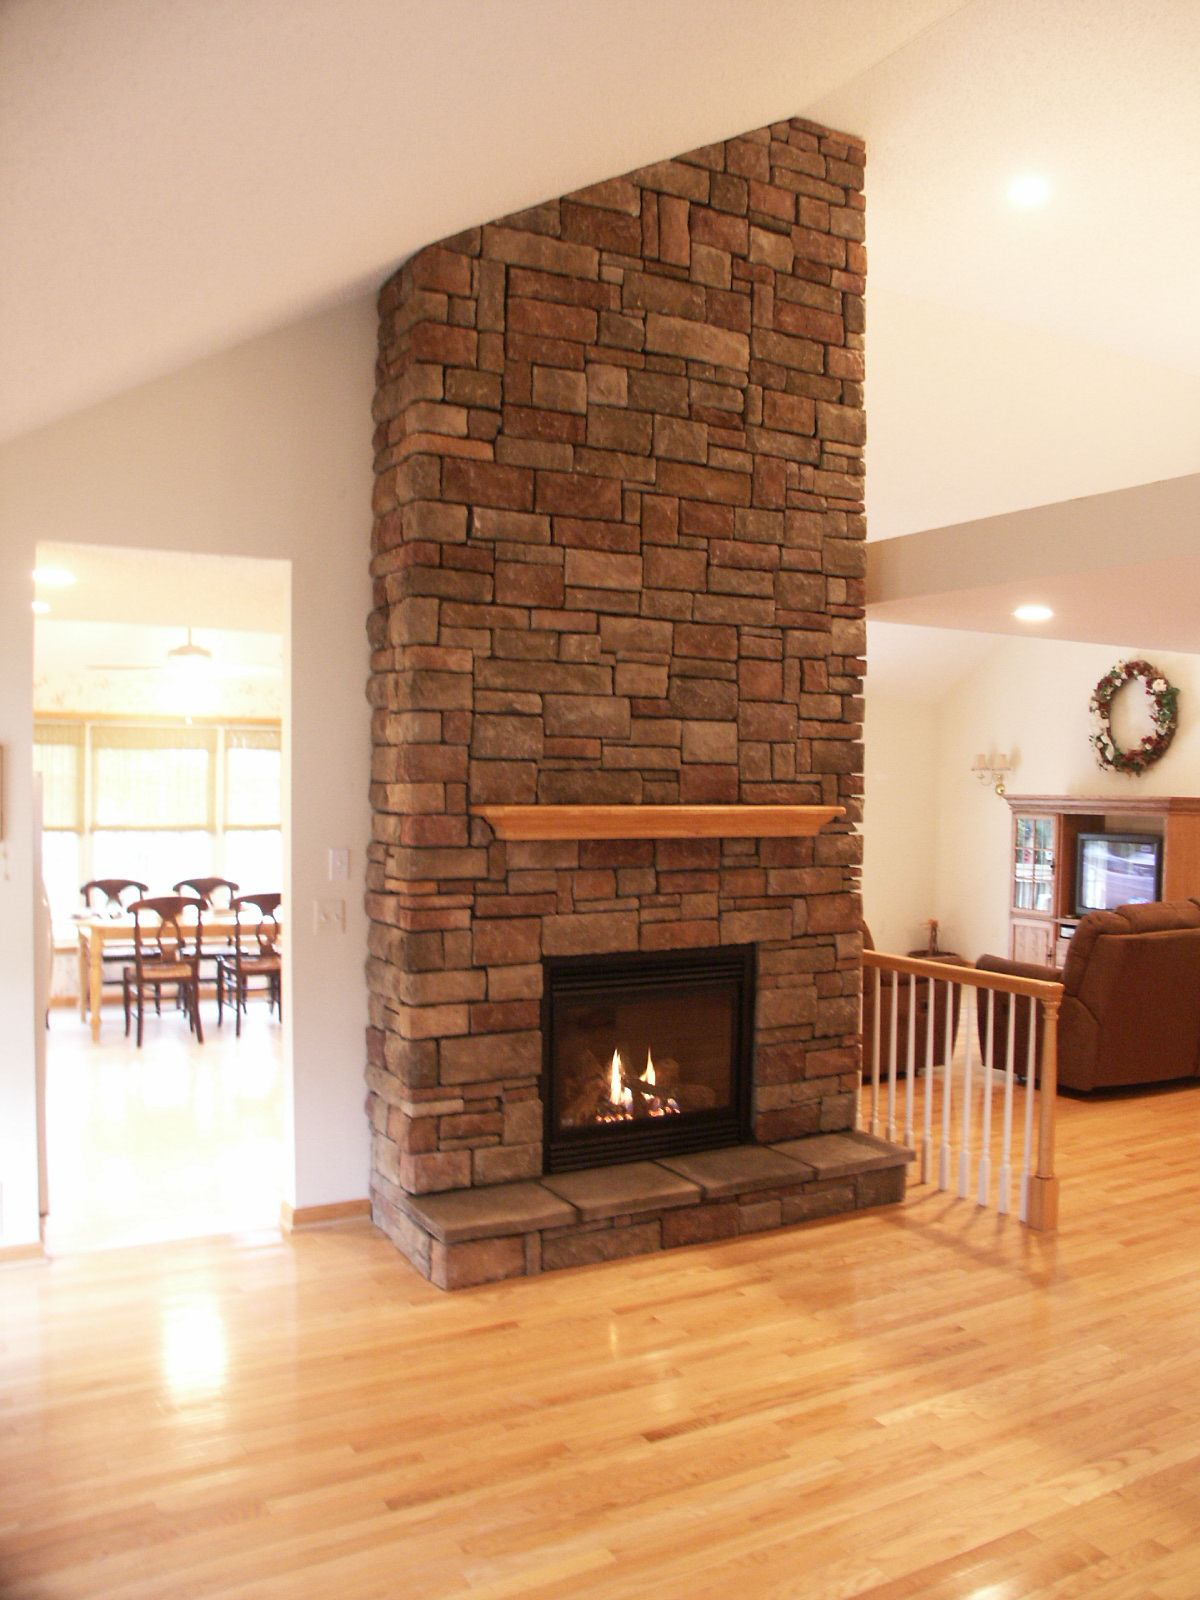 Living Rooms Interior Design A New Gas Beautiful Fireplaces Stone Fireplace Surrounds Freestanding Rustic Faux Brick Siding Fronts